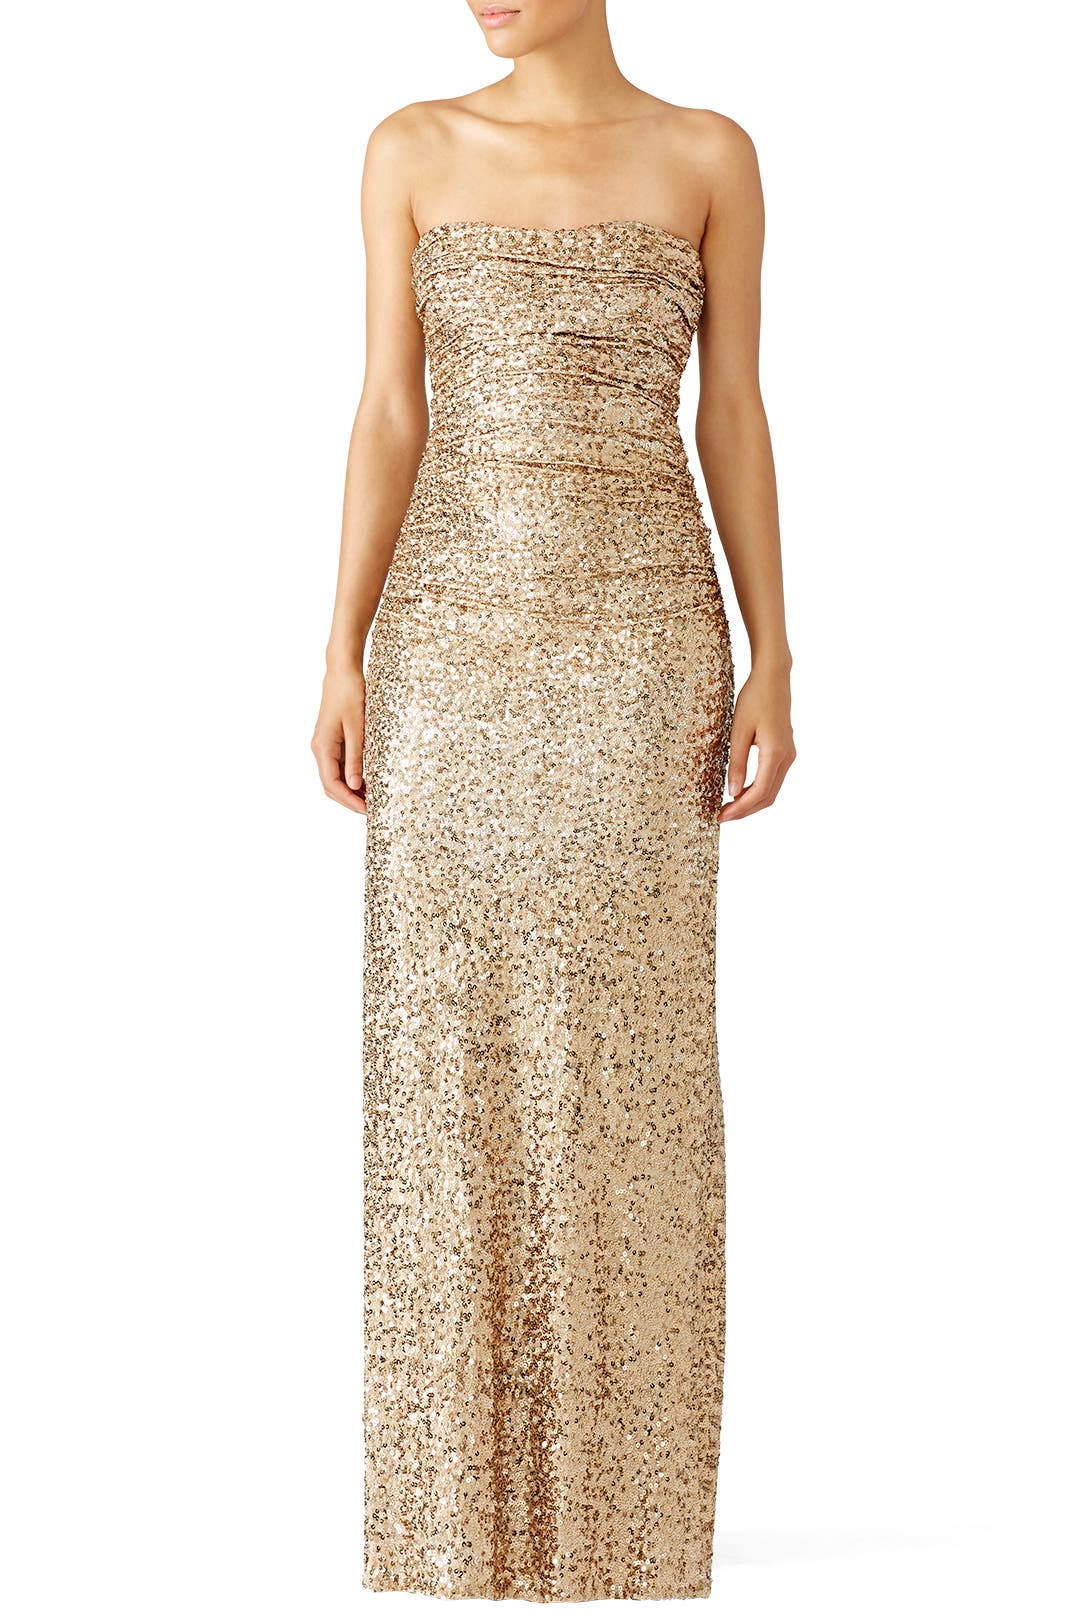 Gold Glitterati Gown by Badgley Mischka